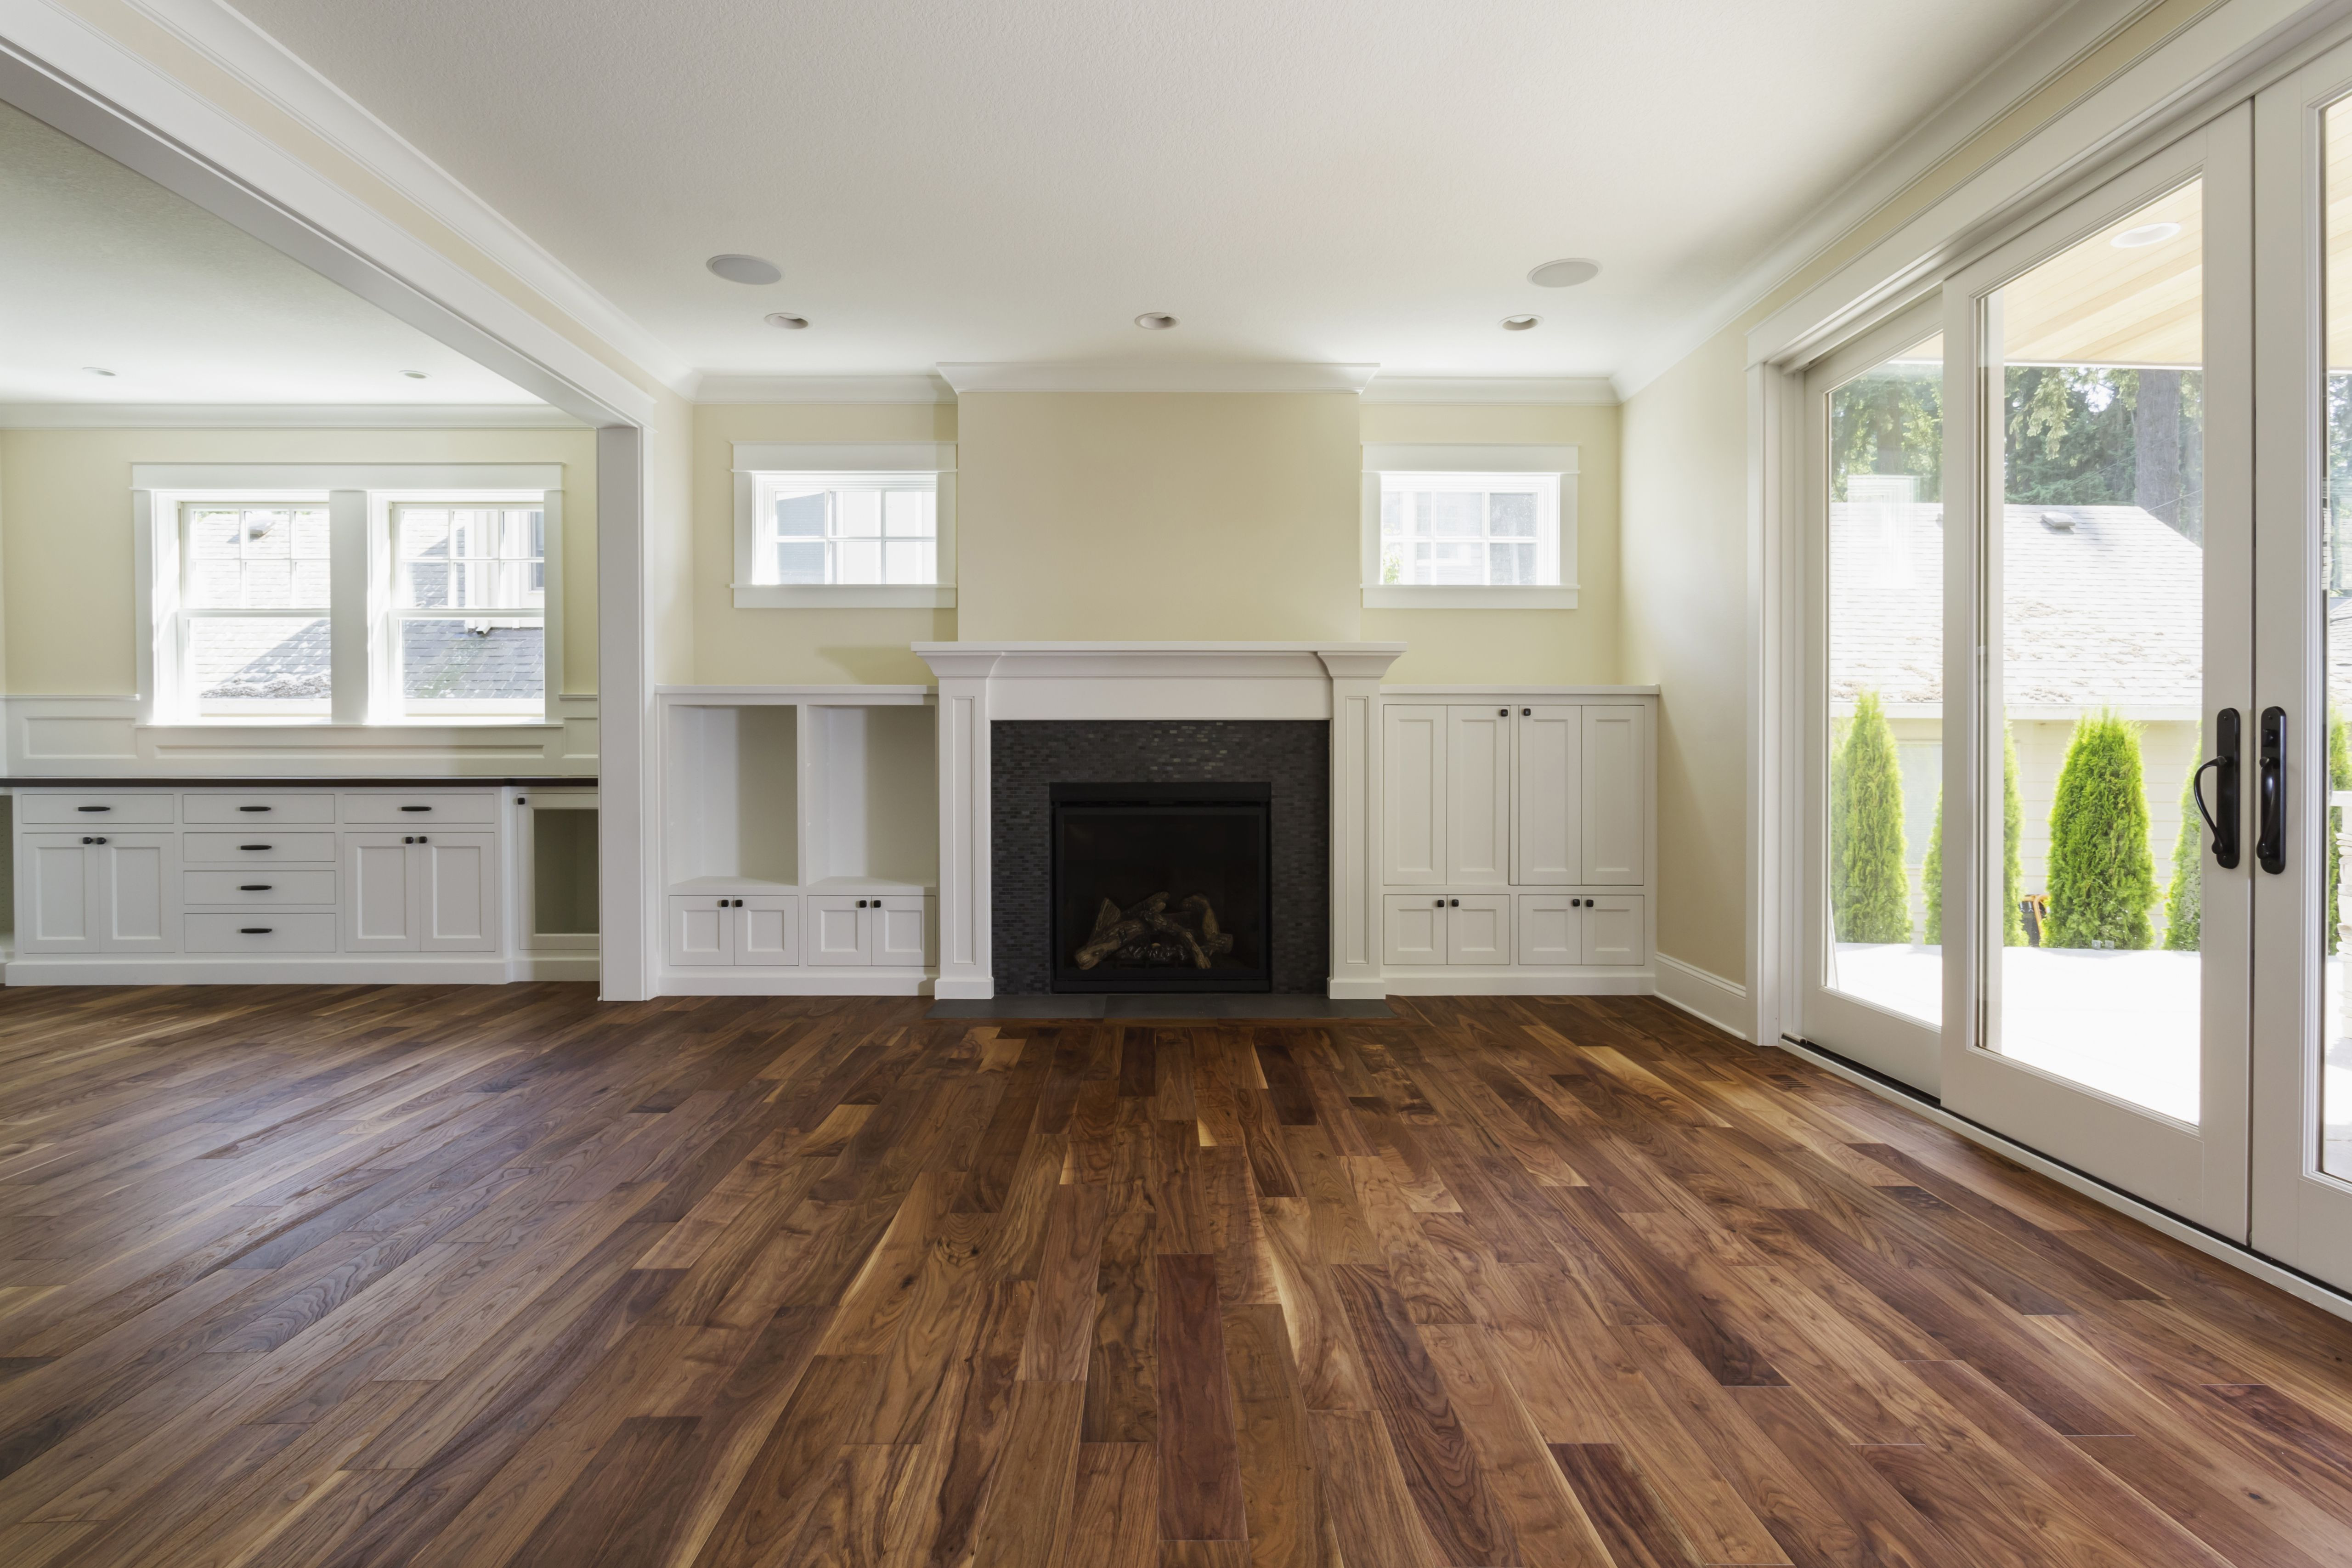 how much does installing hardwood floors cost of the pros and cons of prefinished hardwood flooring within fireplace and built in shelves in living room 482143011 57bef8e33df78cc16e035397